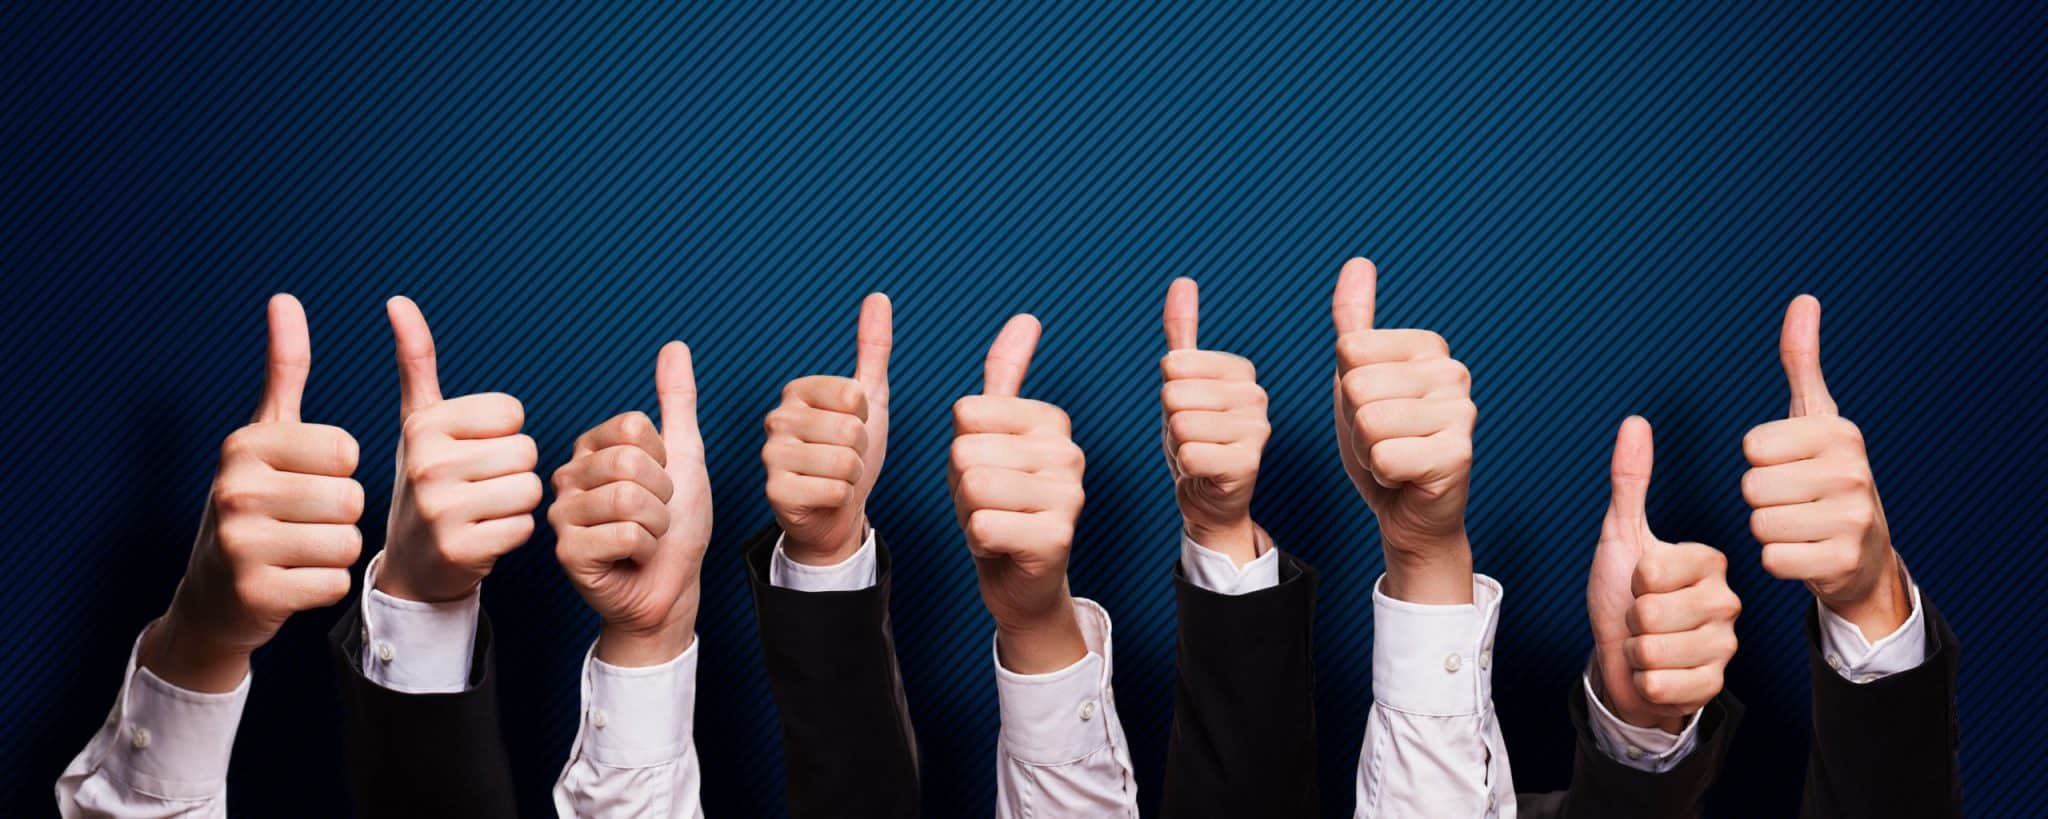 Useful tips for setting up an effective Employee Rewards Program